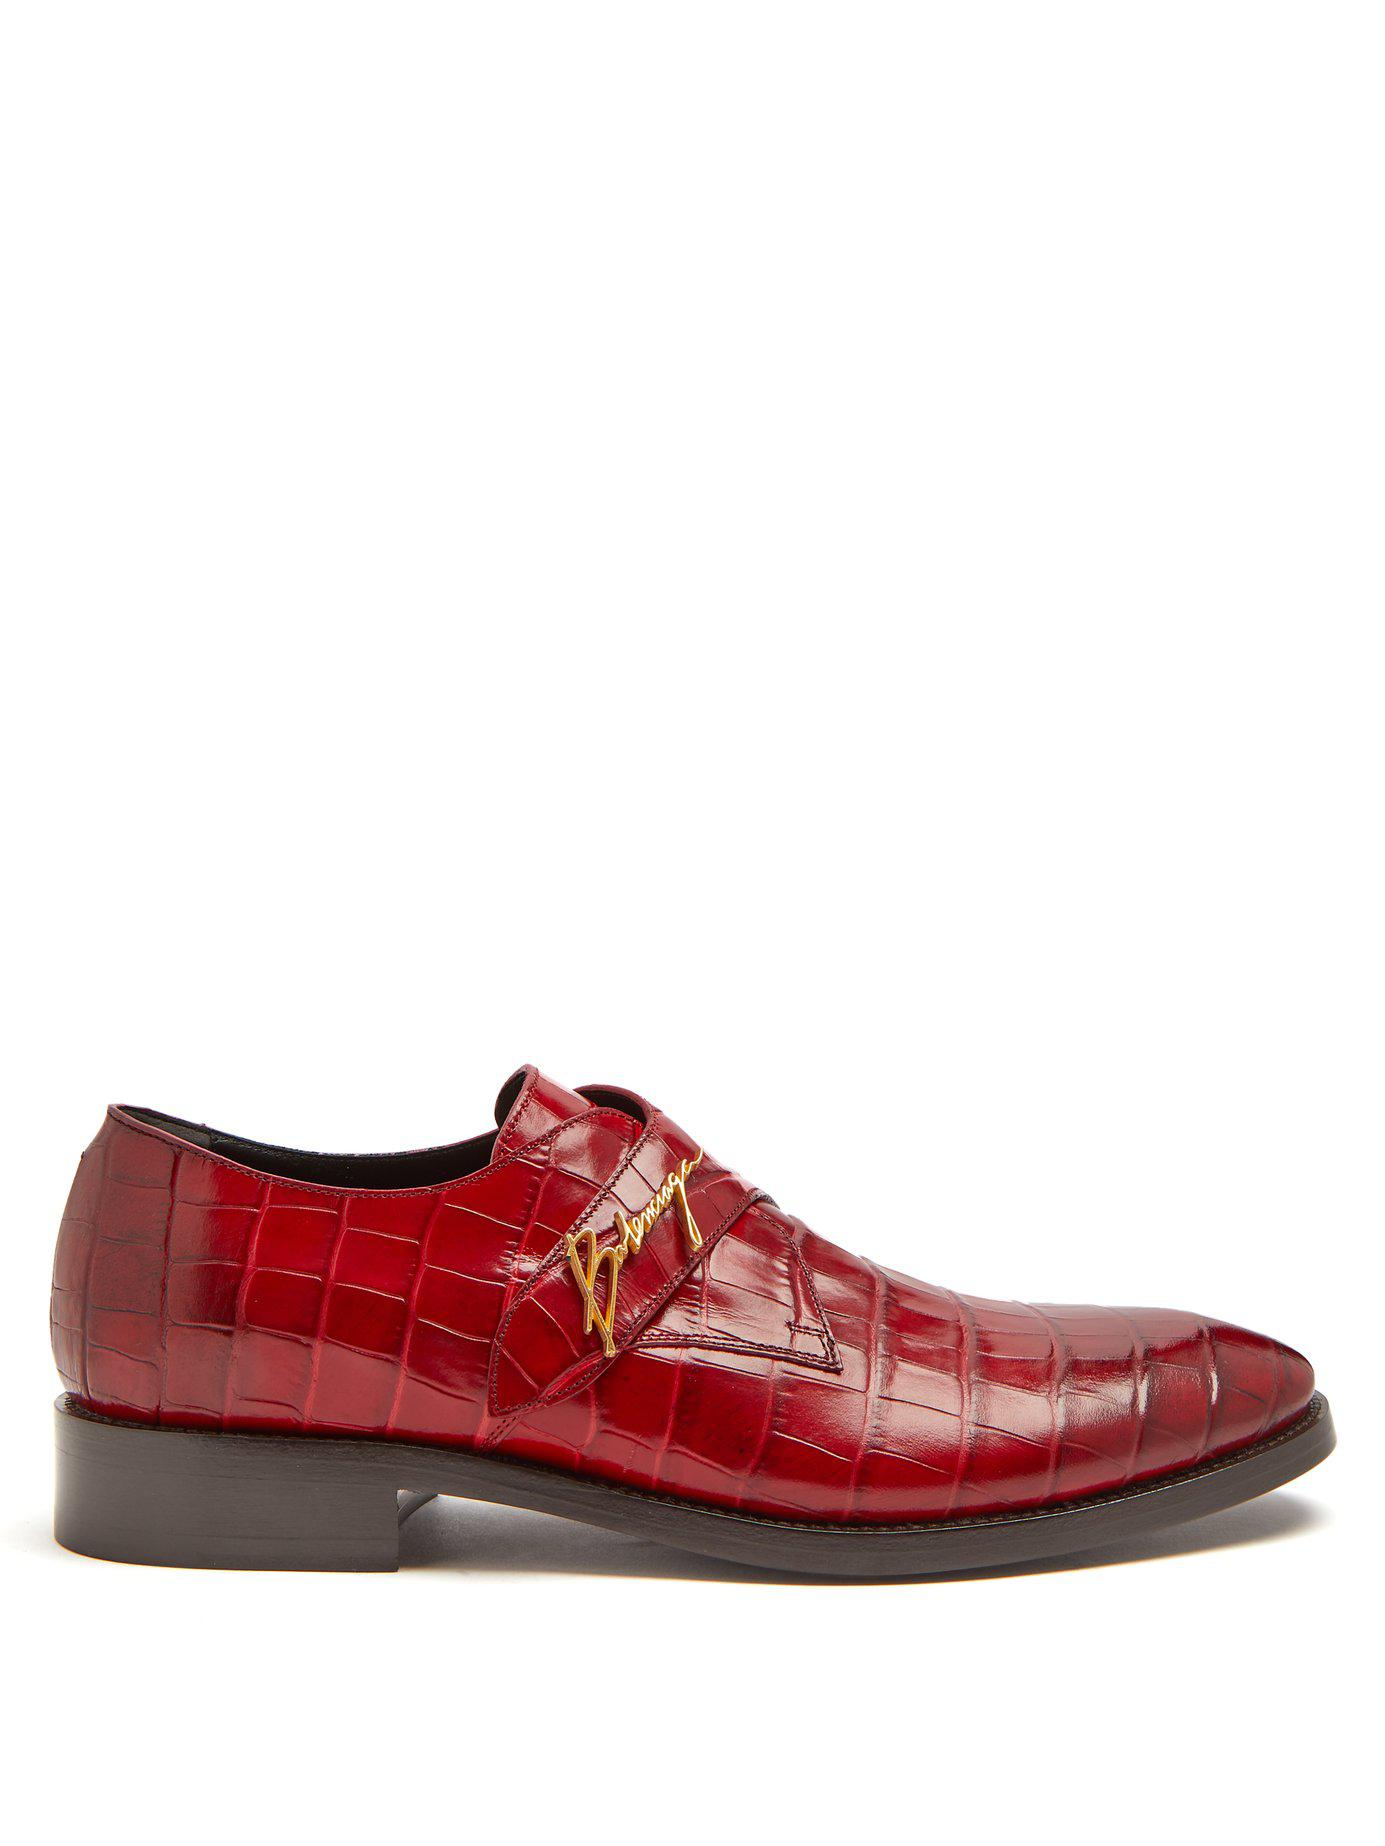 f035c4e778d7 Lyst - Balenciaga Crocodile Effect Leather Derby Shoes in Red for Men